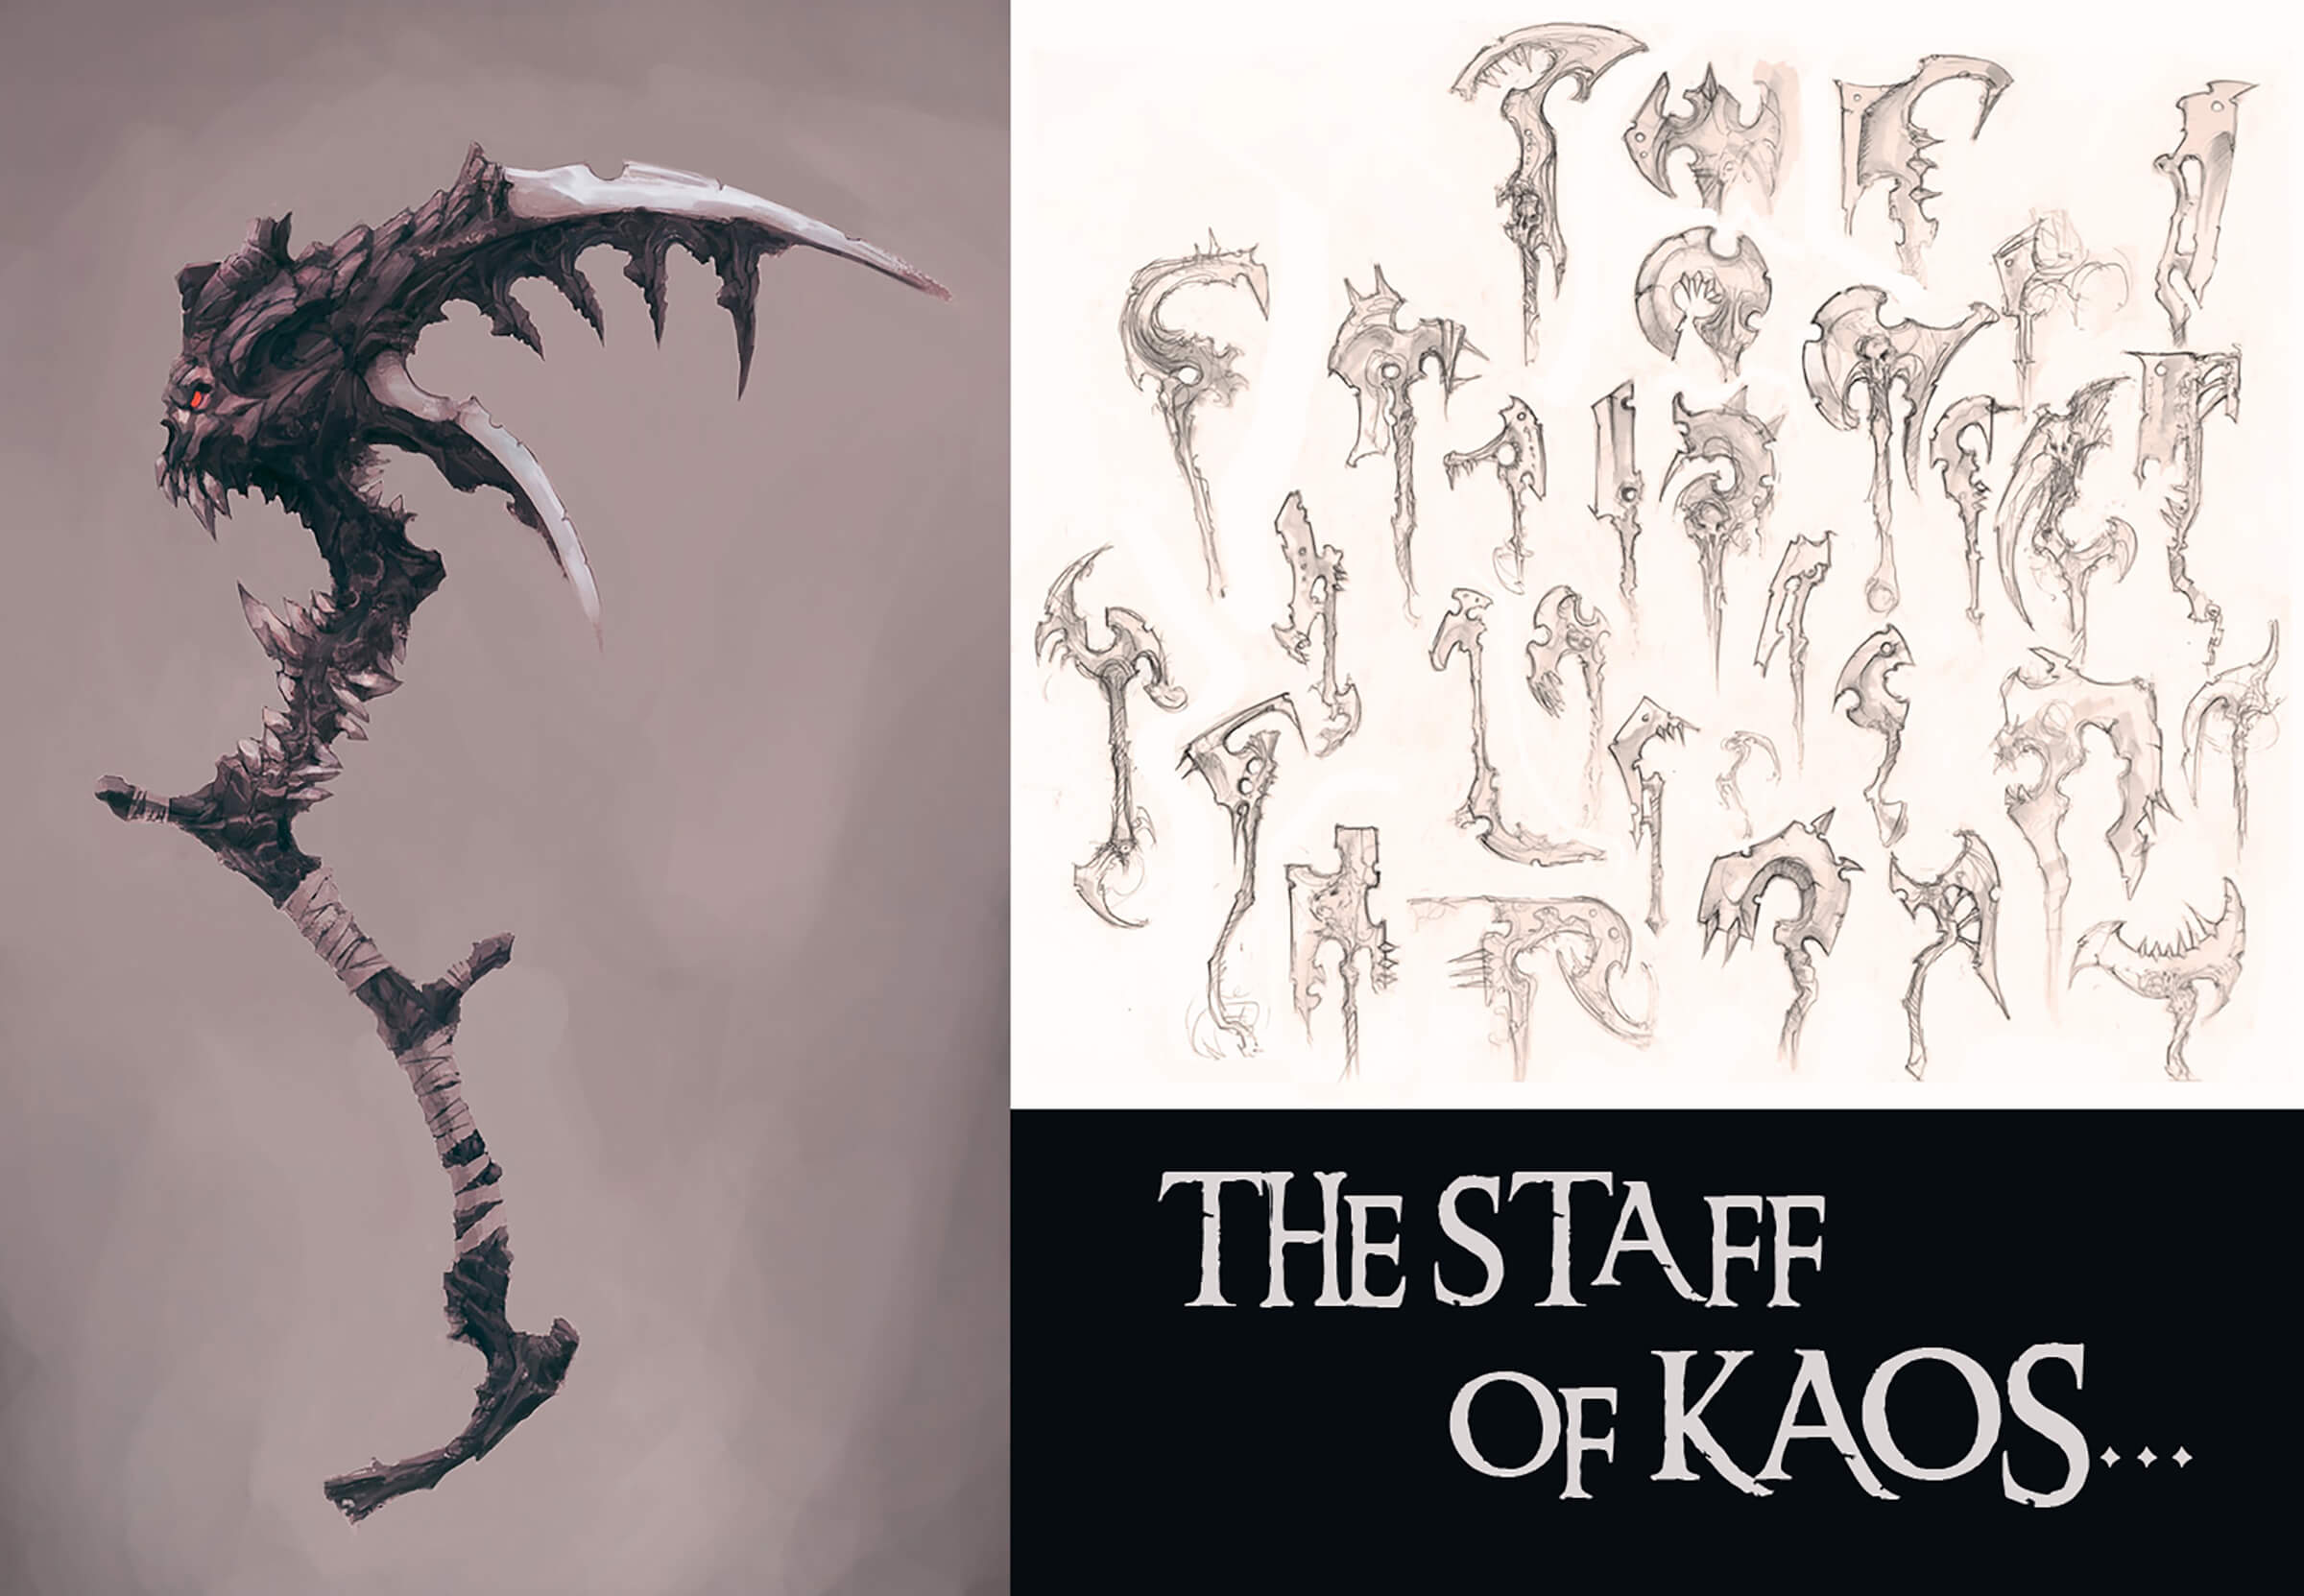 Development sketches of a menacing, gnarled double-bladed scythe fashioned with jagged face-like and skeletal protuberances.